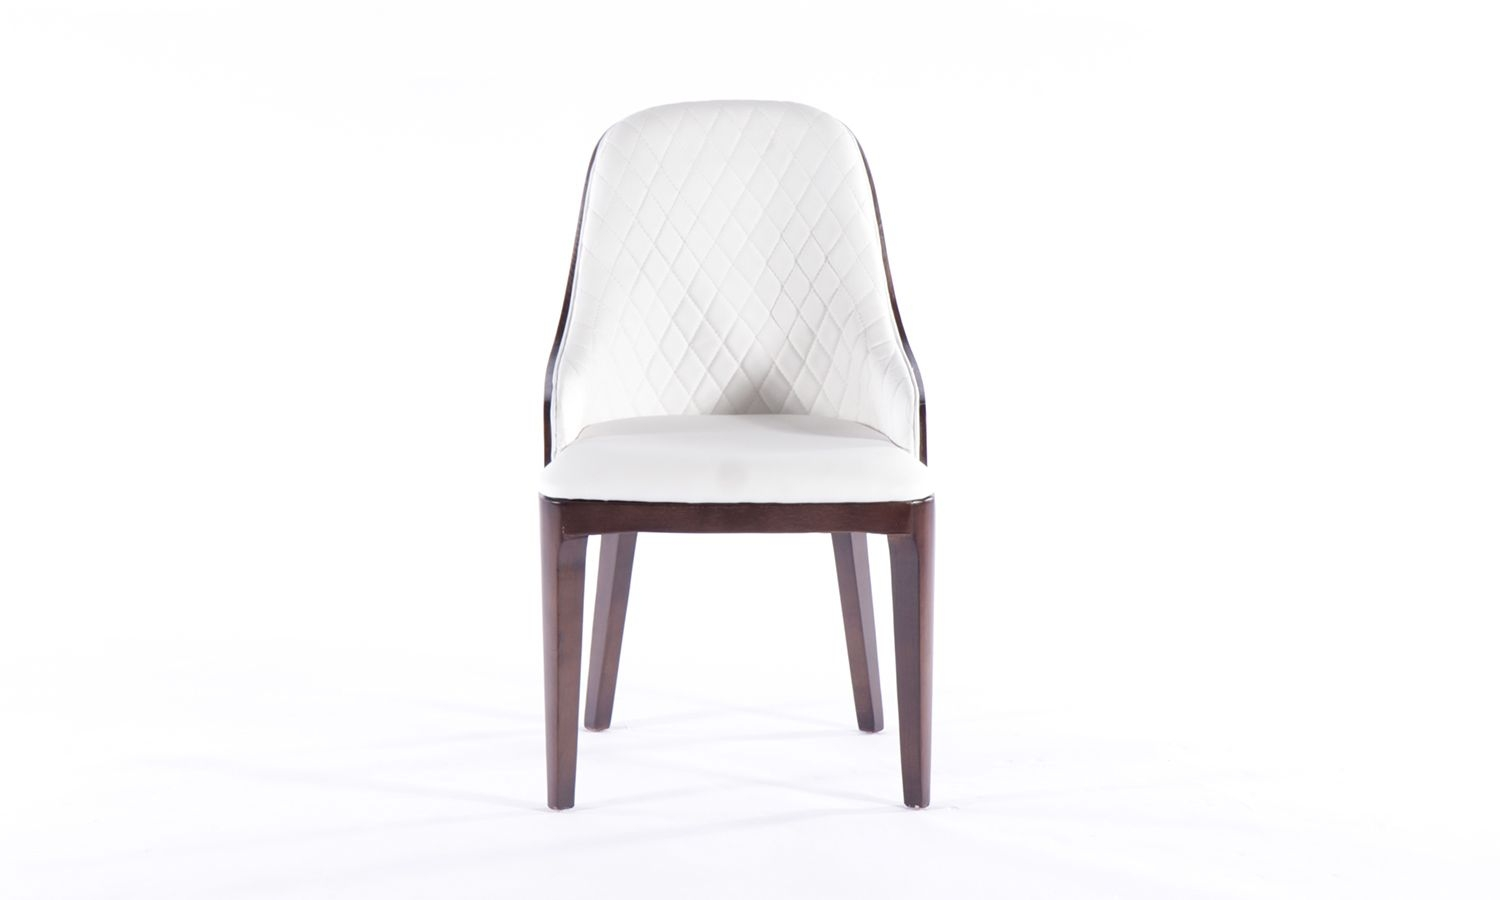 8 x Urban Deco Madrid White Faux Leather Dining Chair